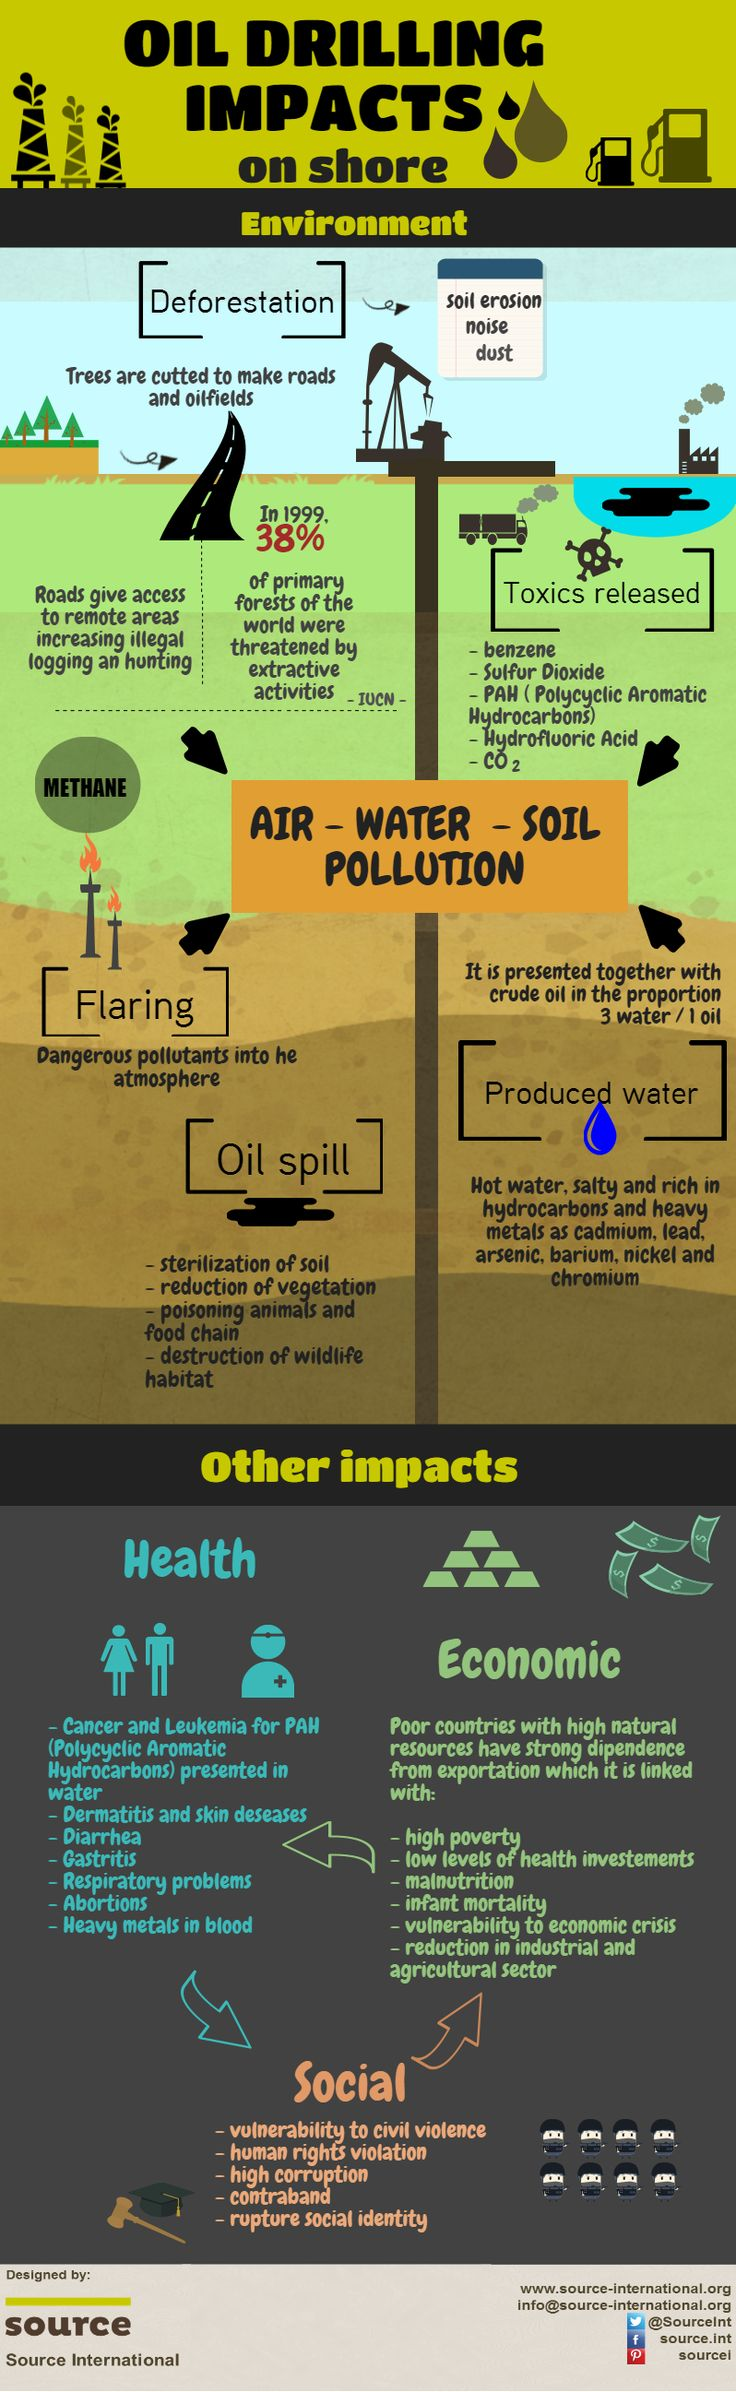 OIL EXTRACTION ON SHORE. DO YOU KNOW HOW MANY IMPACTS IT HAS?